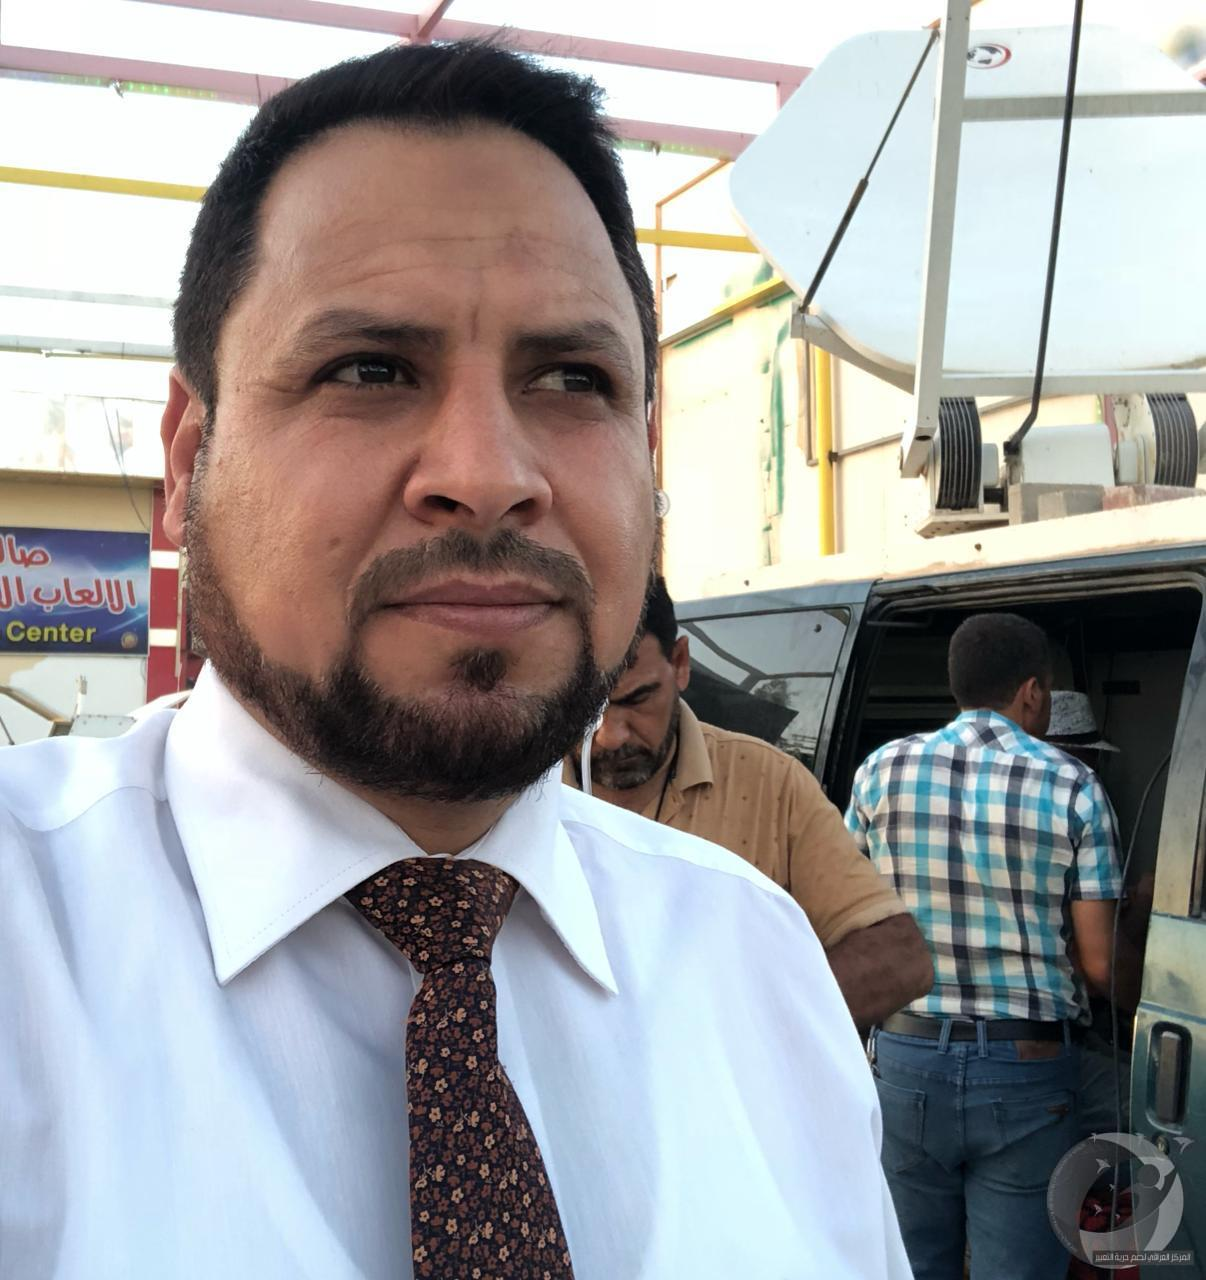 Rights refuses the attack by a traffic police officer in Diwaniya on crew of Al- Iraqiya satellite channel and demands the registration of a lawsuit